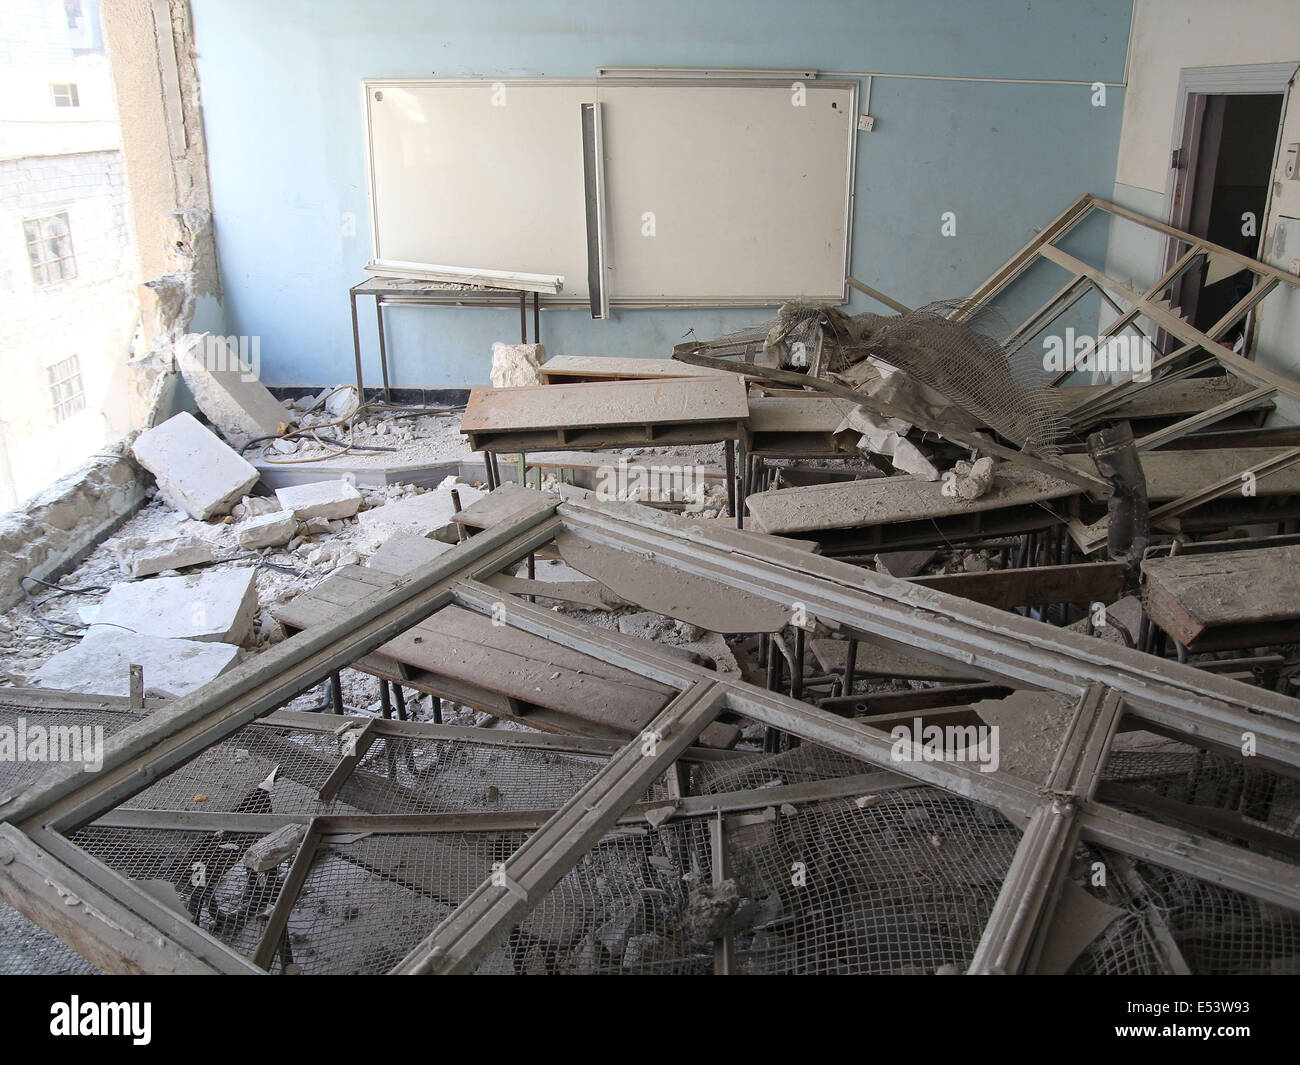 Aleppo, Syria. 13th Jan, 2013. A classroom, in a blown up school builidng, is no longer used by students in Aleppo, - Stock Image